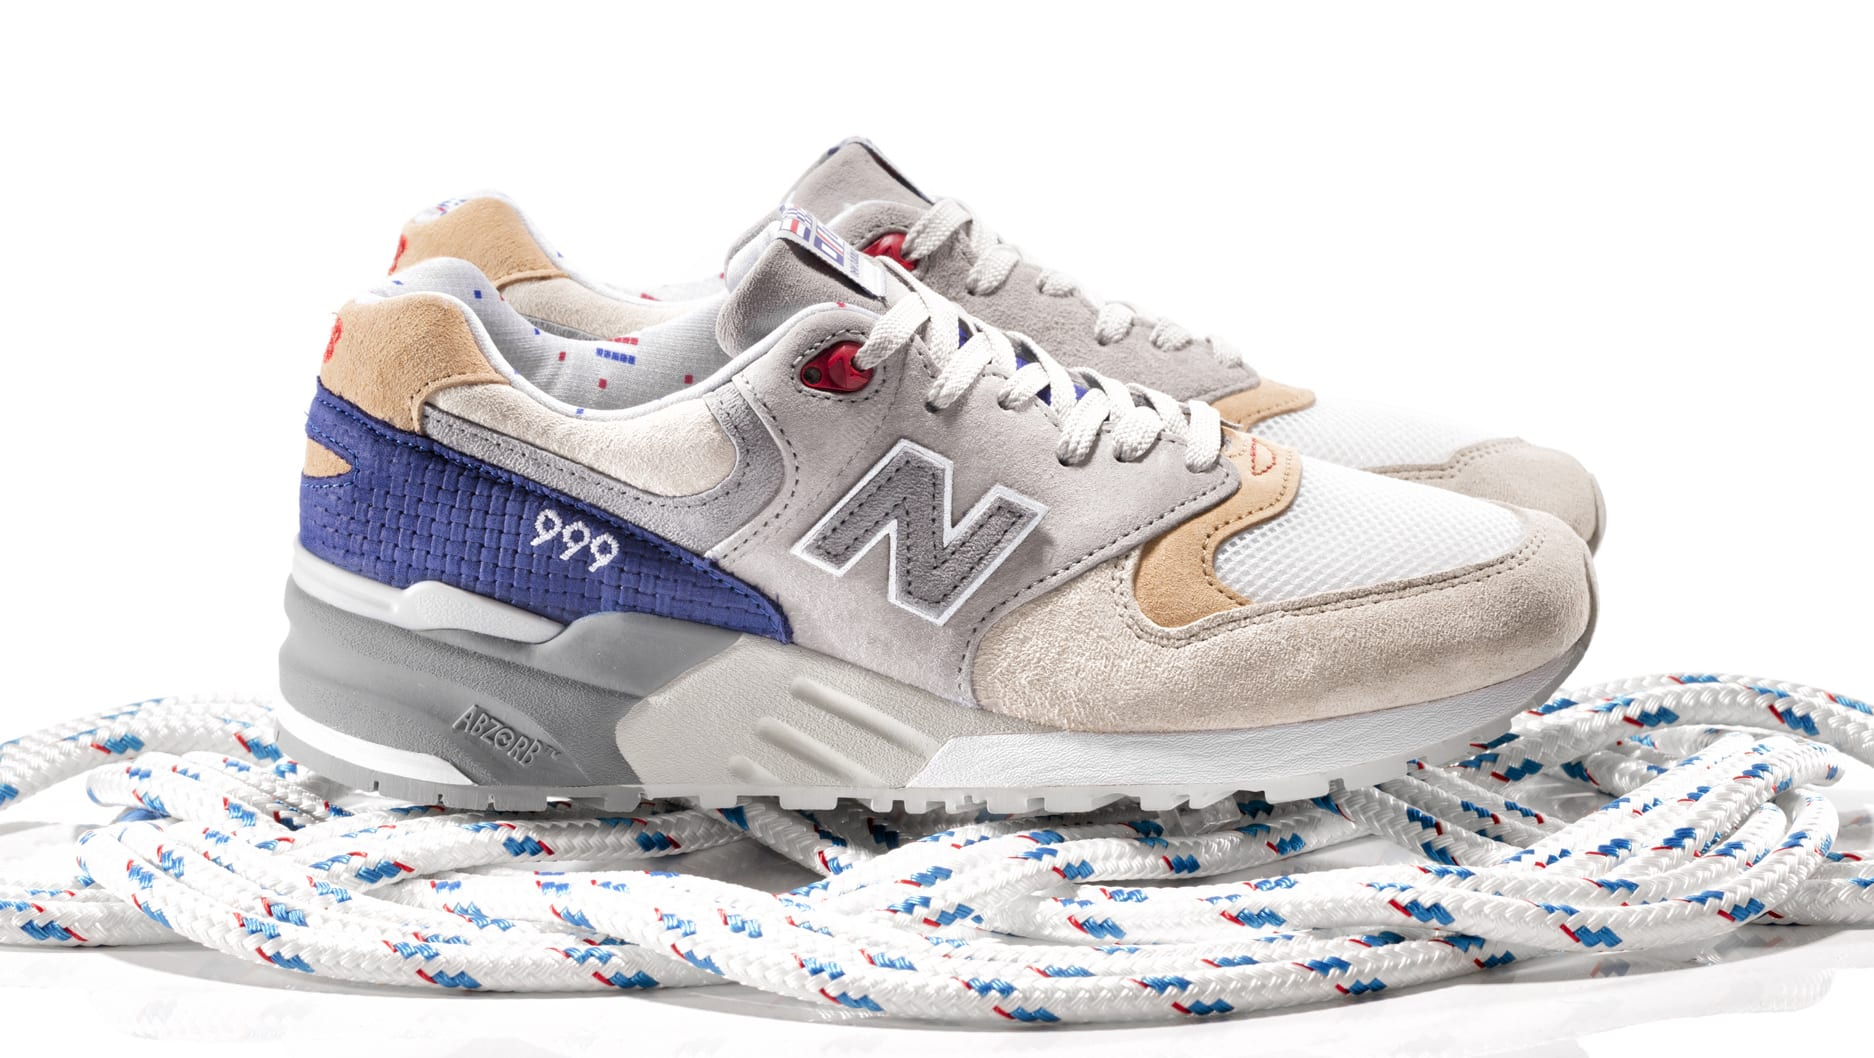 Concepts New Balance 999 Hyannis 2